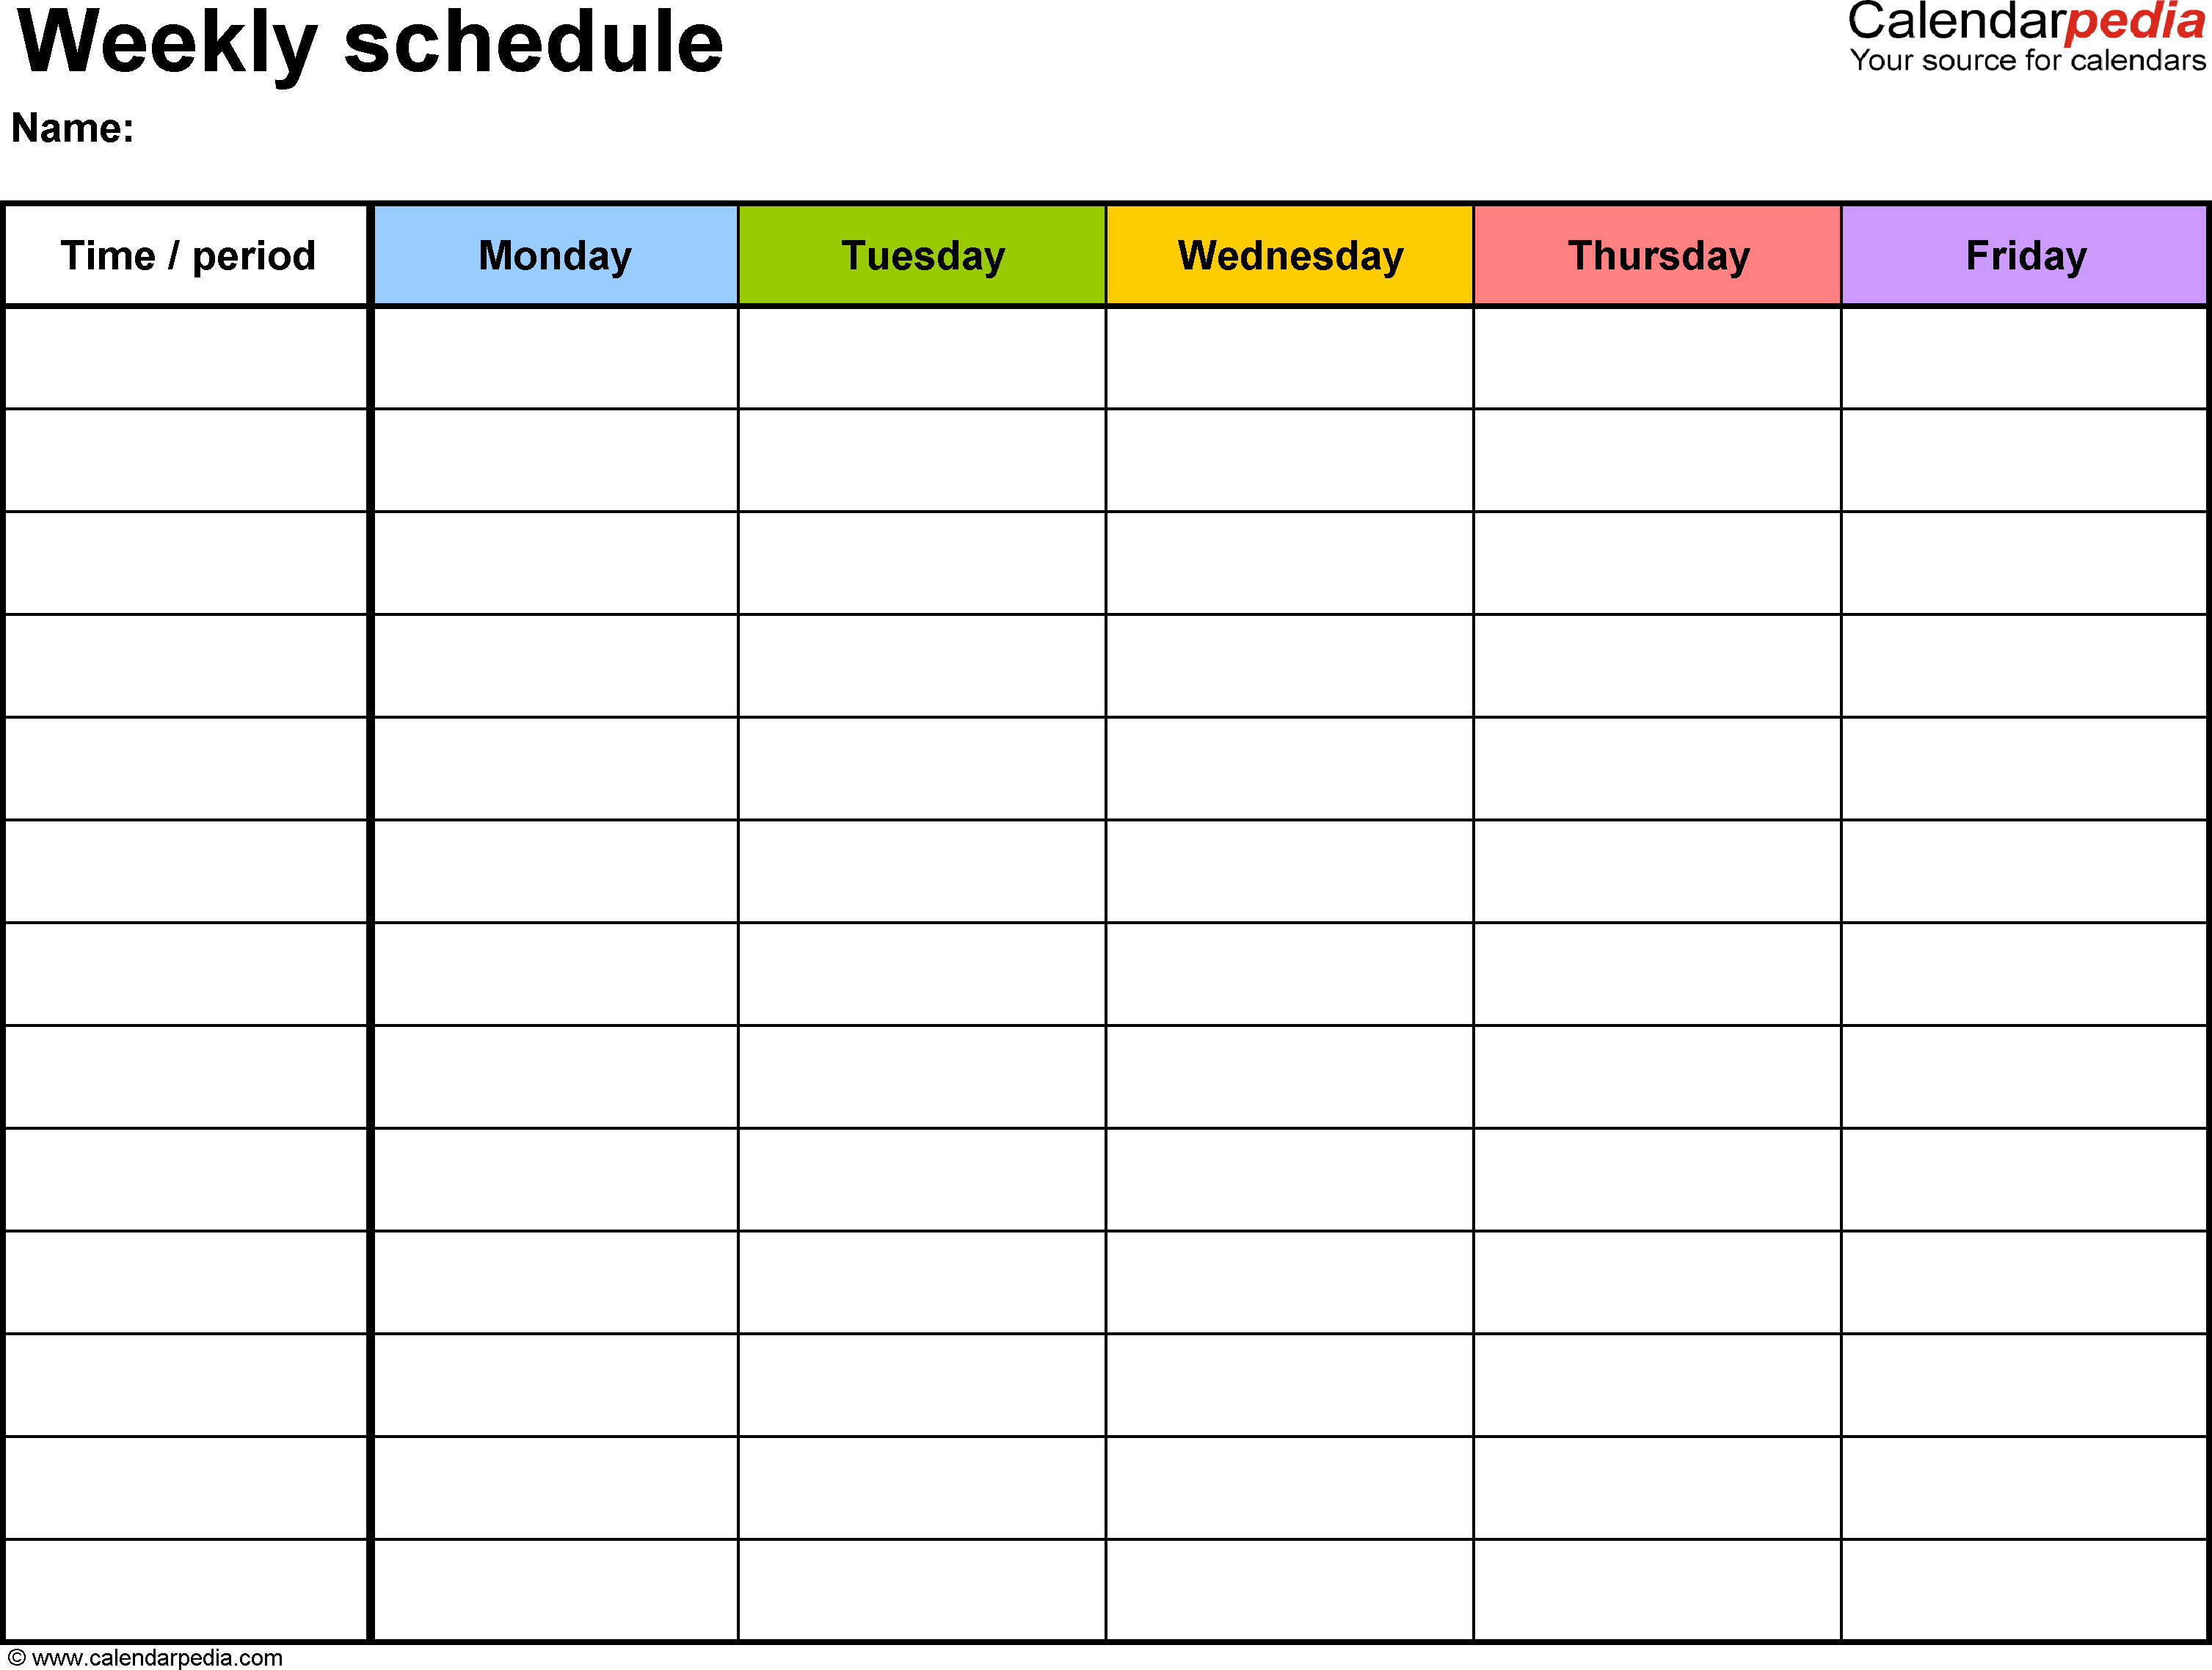 Weekly Schedule Template For Word Version 1 Landscape 1